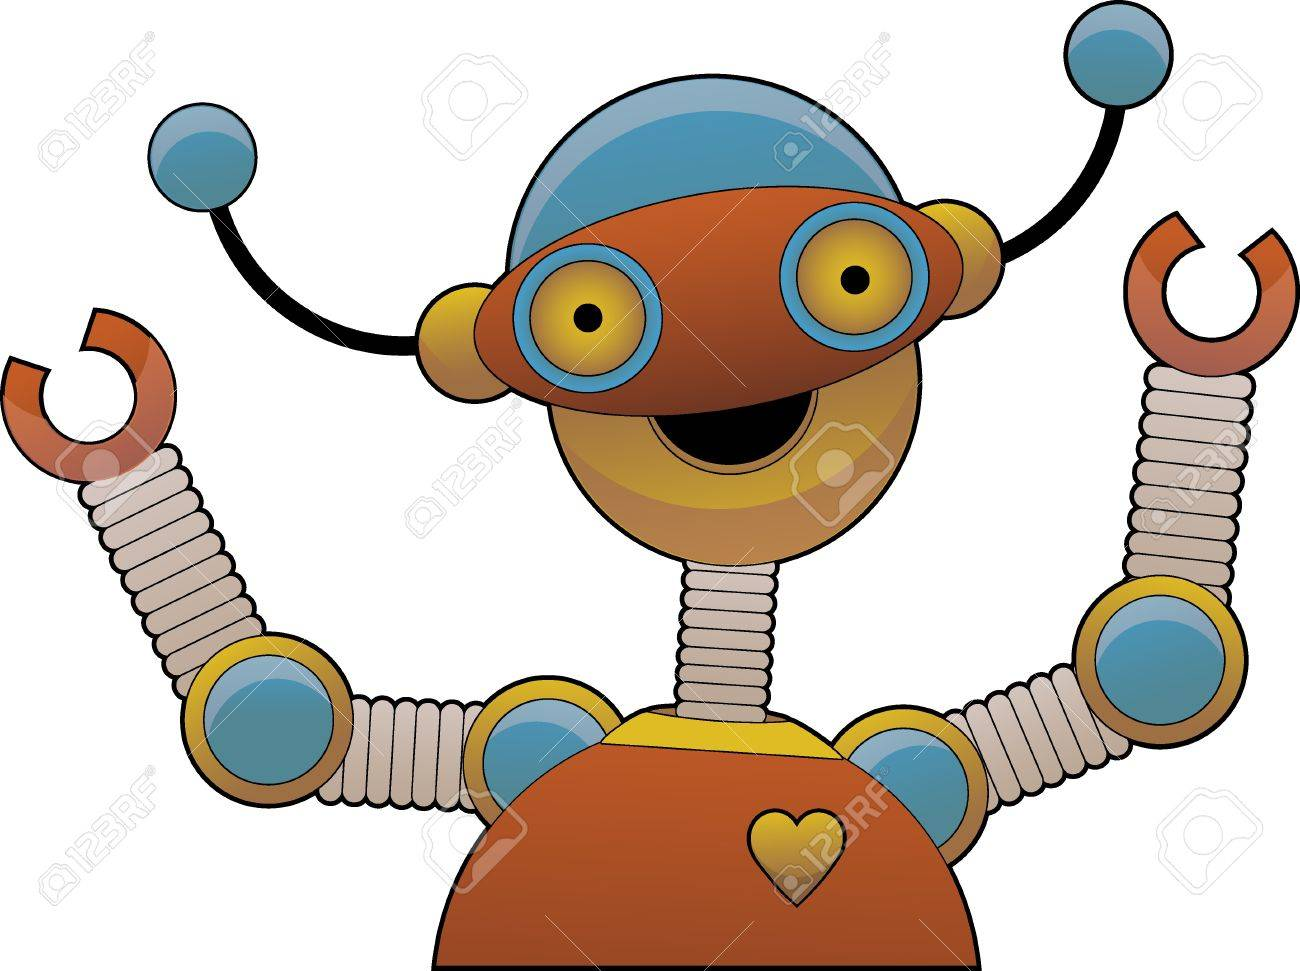 Cheering bright colorful shiny robot smiling Stock Vector - 9931161